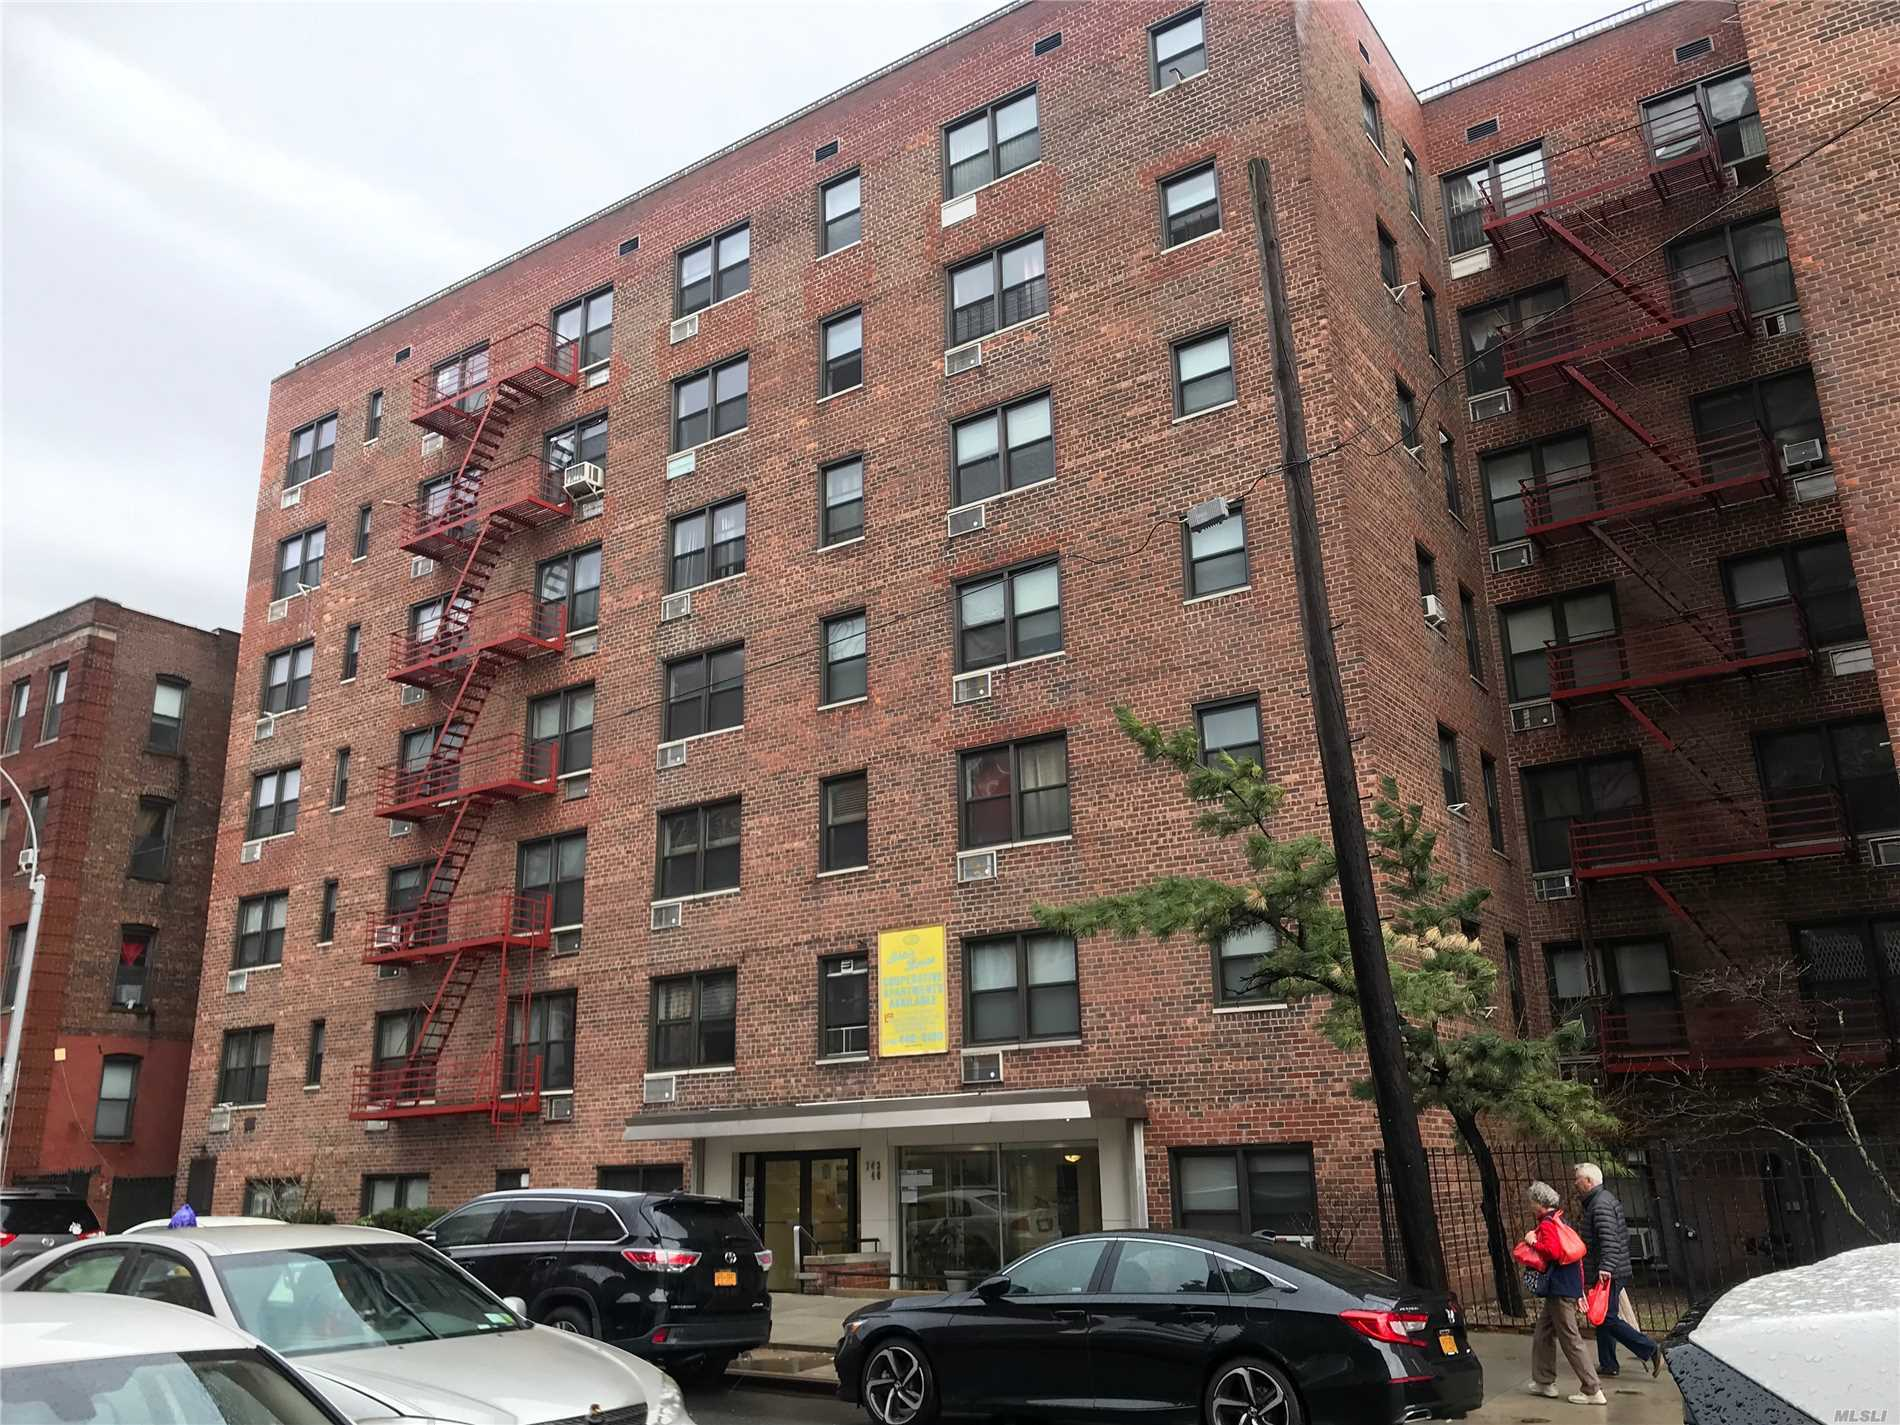 Extra Large Studio Coop Apartment with Approx 585 sqft. Spacious Layout With Foyer, Living Room/Bedroom, Eat-In-Kitchen, Full Bath. Low Monthly Maintenance $575 includes all utilities except electricity. Excellent Location with Easy Walk To The Subway And Public Transportation. Ok To Sublease After 2 Years.